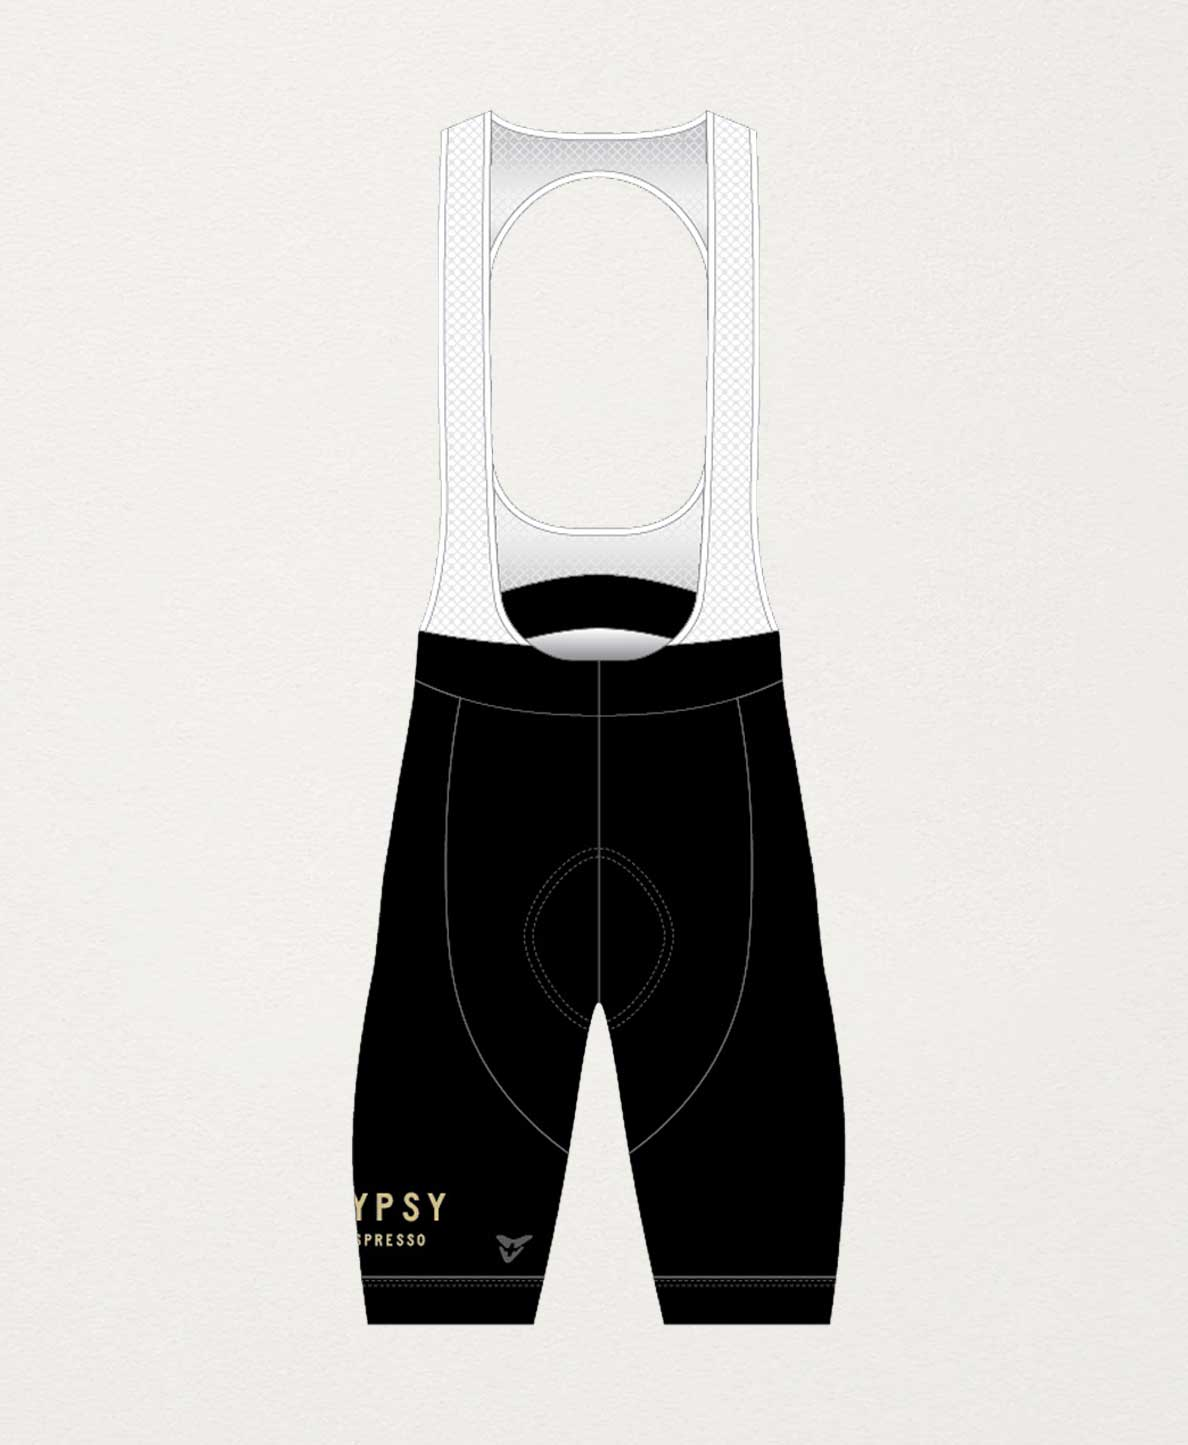 Gypsy Cycle Club - Classic Bib Shorts